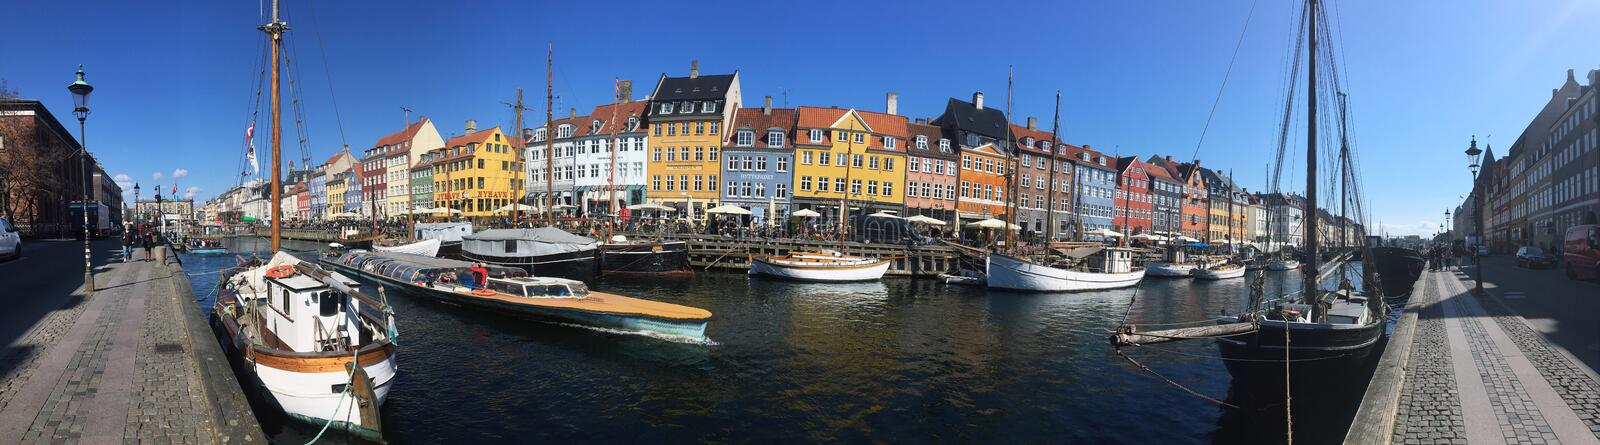 Colored houses near the water channel. Vacation in Europe. Copenhagen. stock image